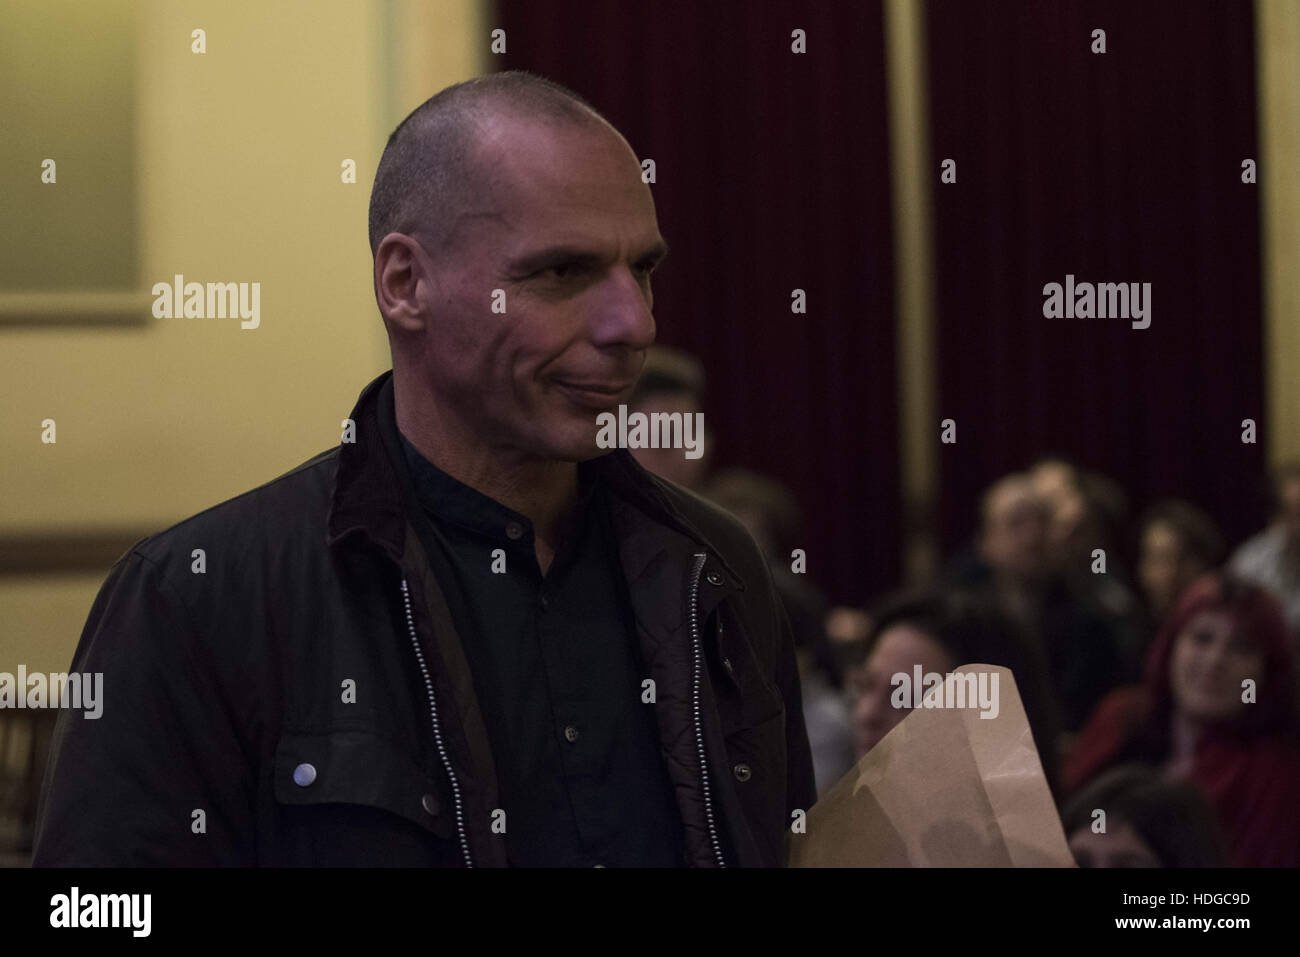 Athens, Greece. 12th Dec, 2016. YIANIS VAROUFAKIS during the presentation of his new book. Renowned Greek economist, - Stock Image